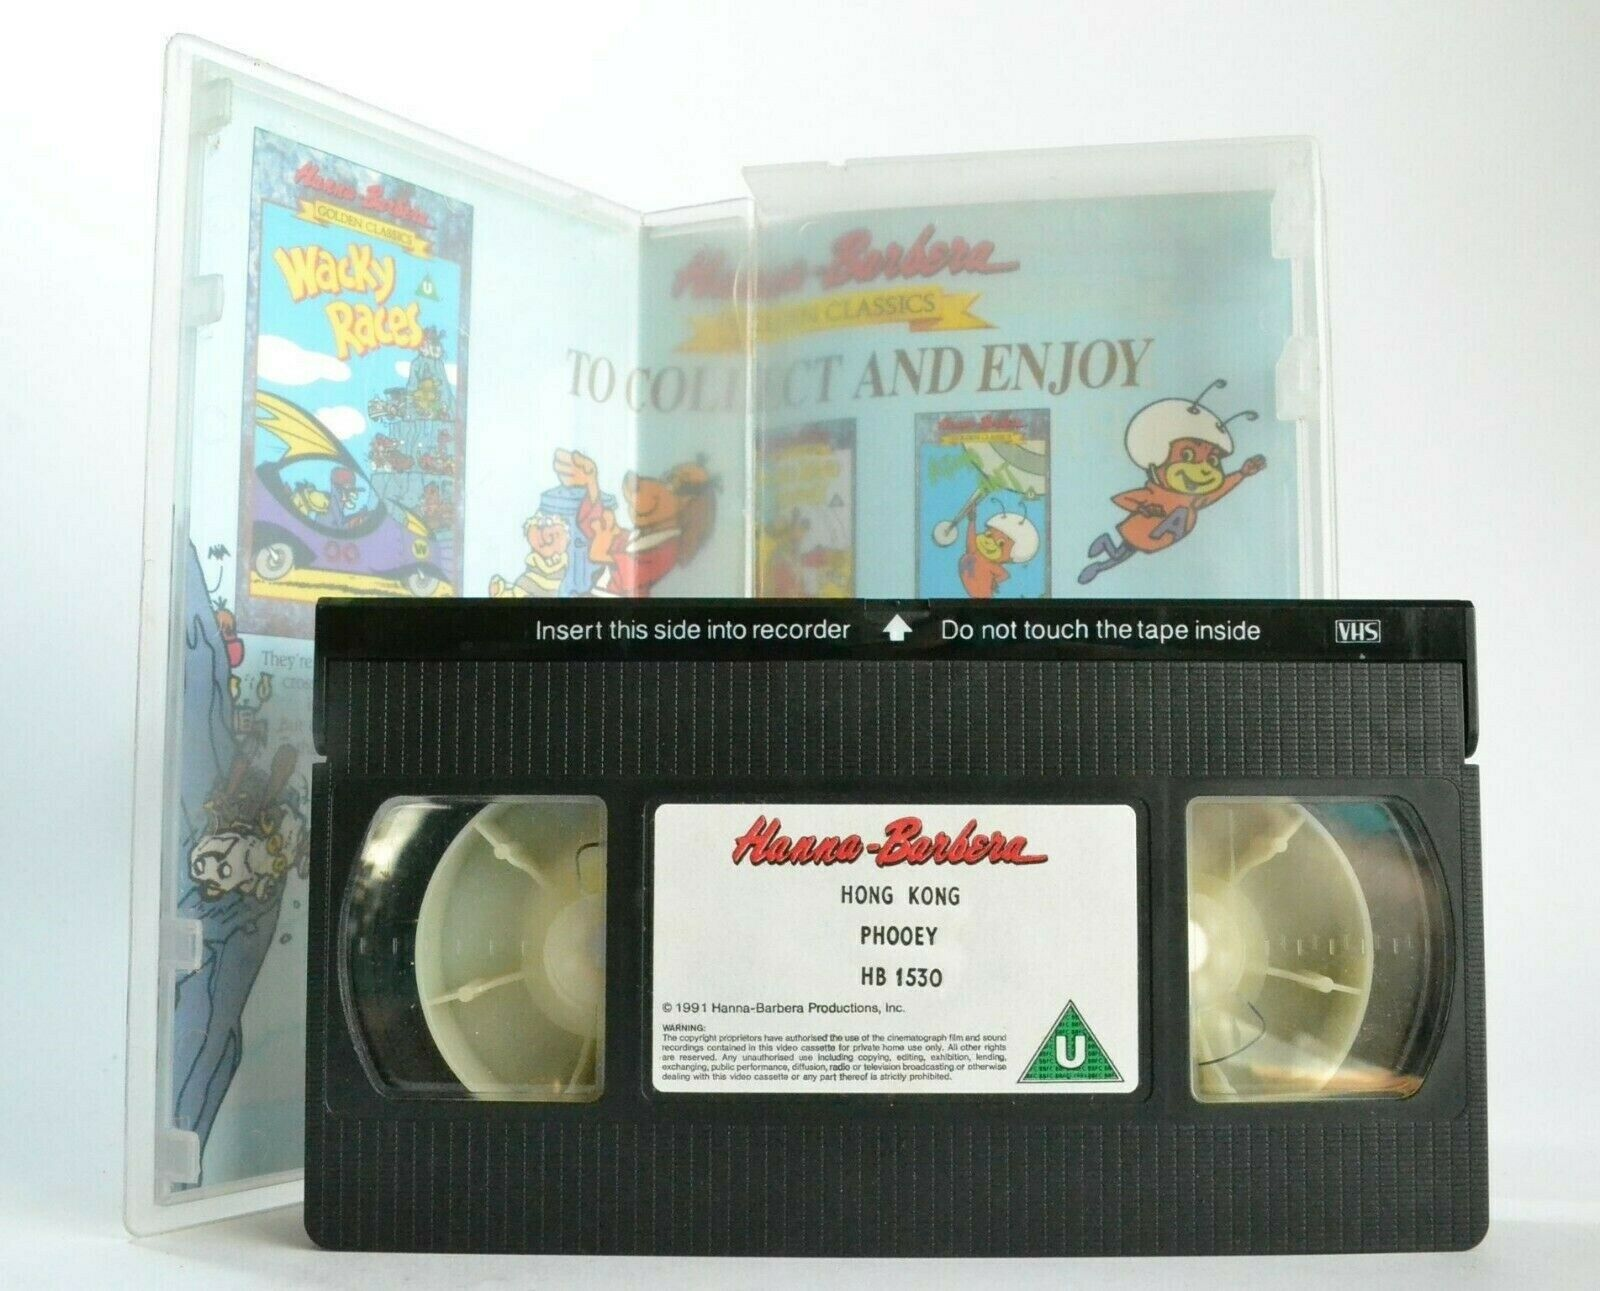 Hong Kong Phooey [Hanna-Barbera Golden Classics] - Animated - Children's - VHS